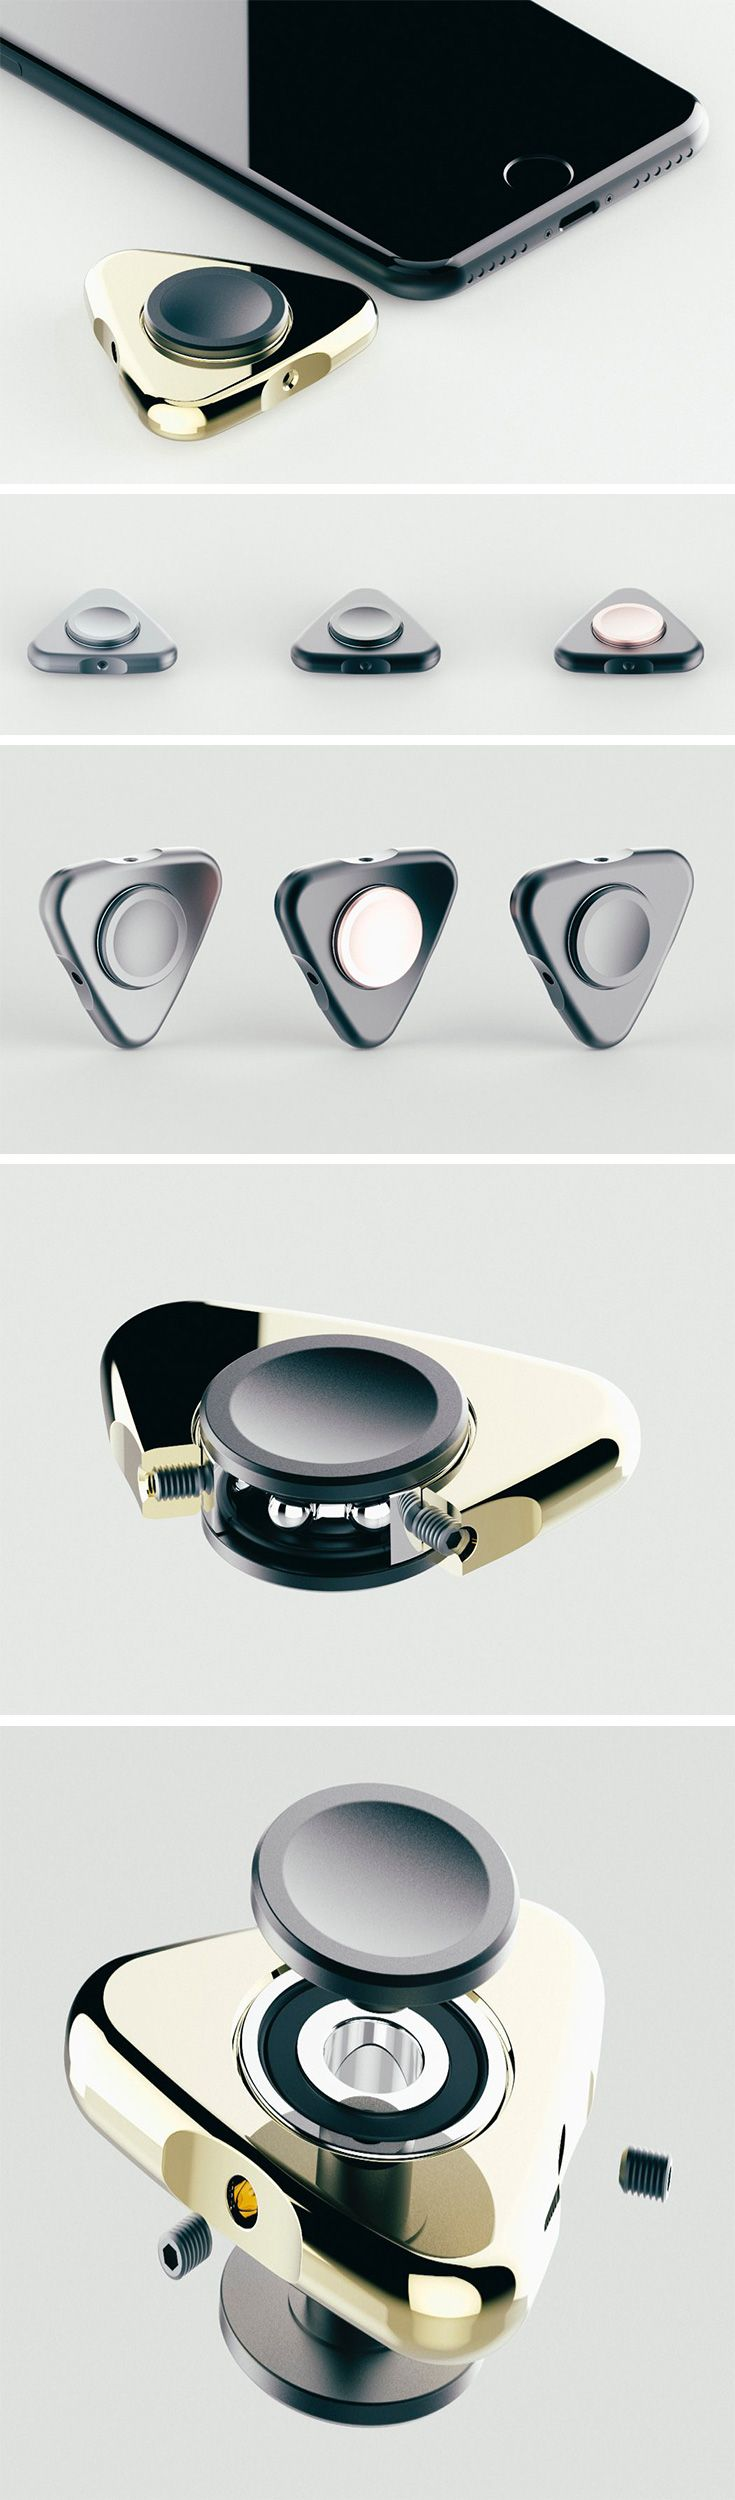 Counteract your ADHD in style with the Massdrop x RAMA WORKS S01 Remedy Spinner! It's the elite version of the favorite toy everyone from 3 to 65 can use to stay focused! Designed to help you focus by keeping your hands engaged, it's crafted with CNC'd 6061 aluminium end caps surrounded by a free-spinning piece of brass or aluminium.